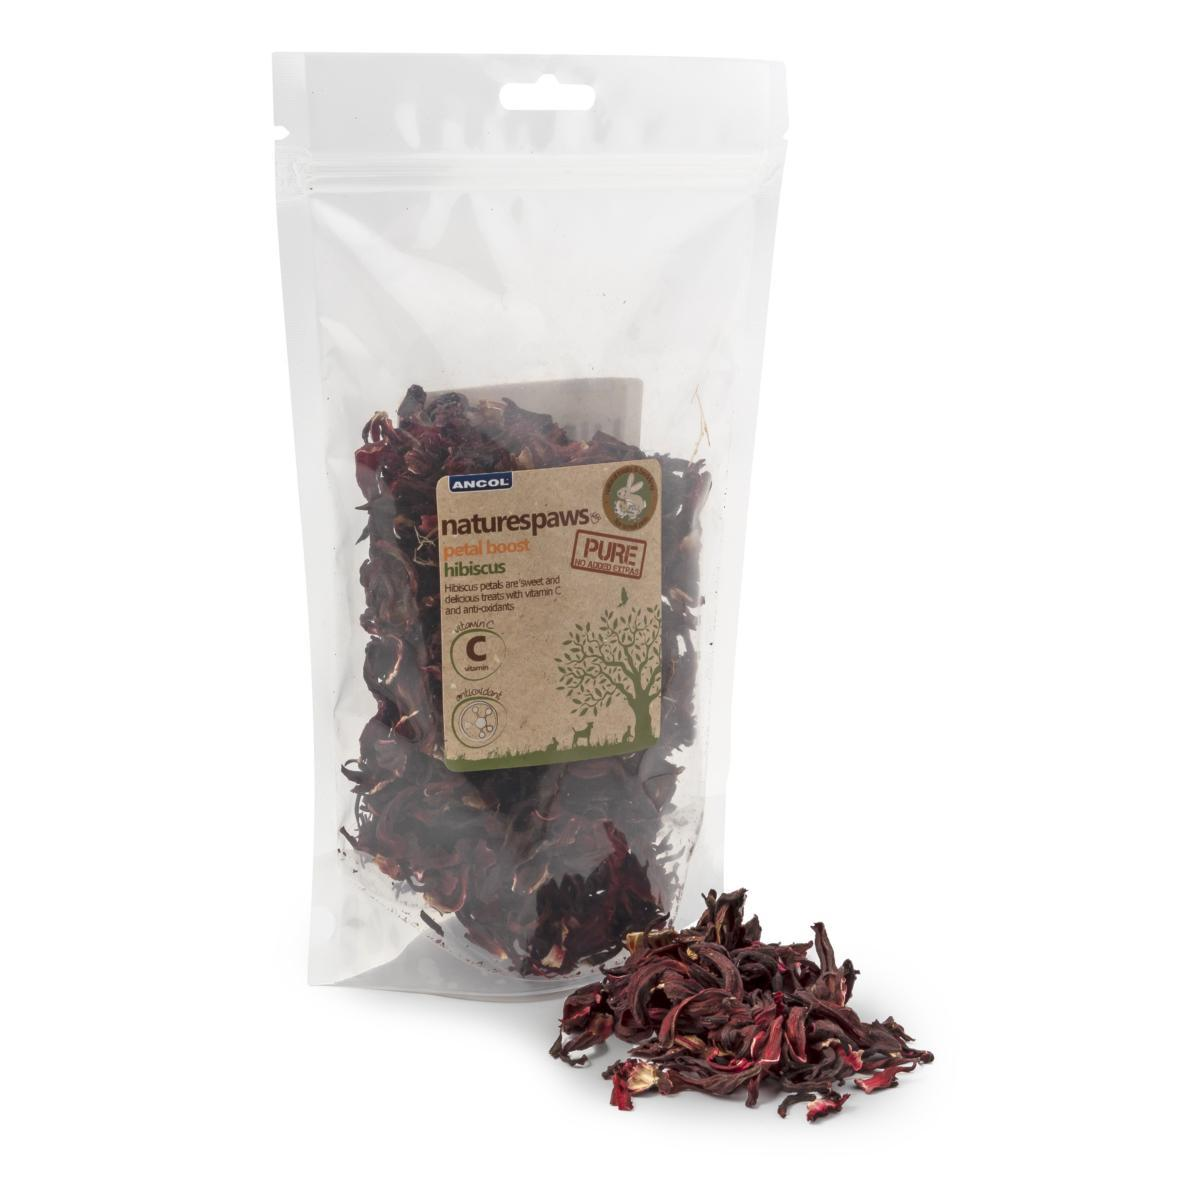 Dried Hibiscus for Rabbits